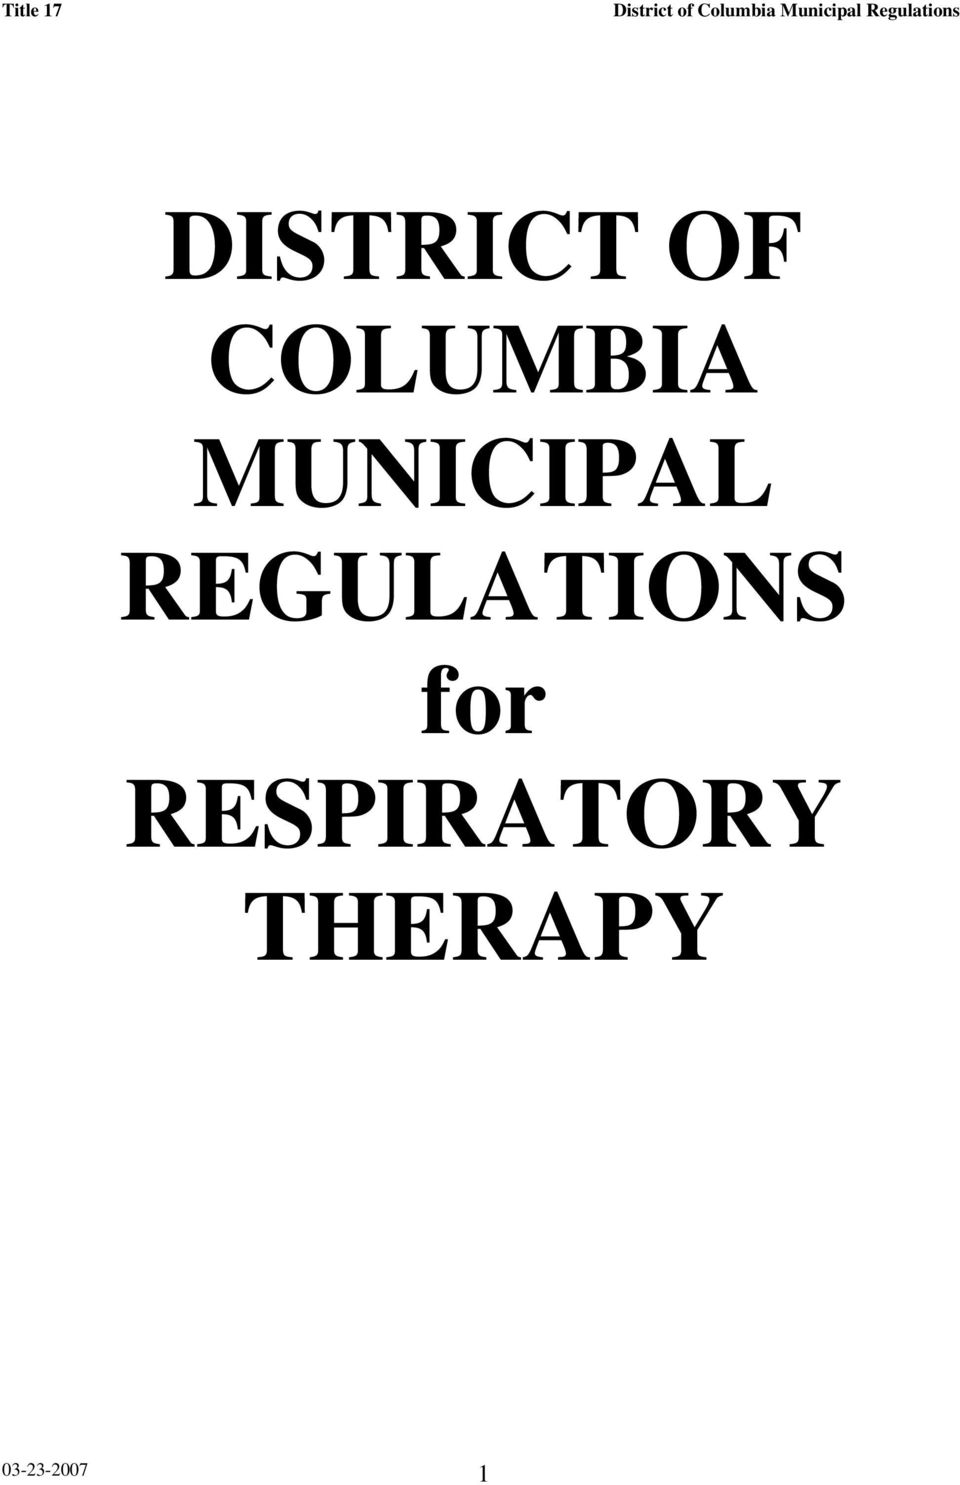 REGULATIONS for